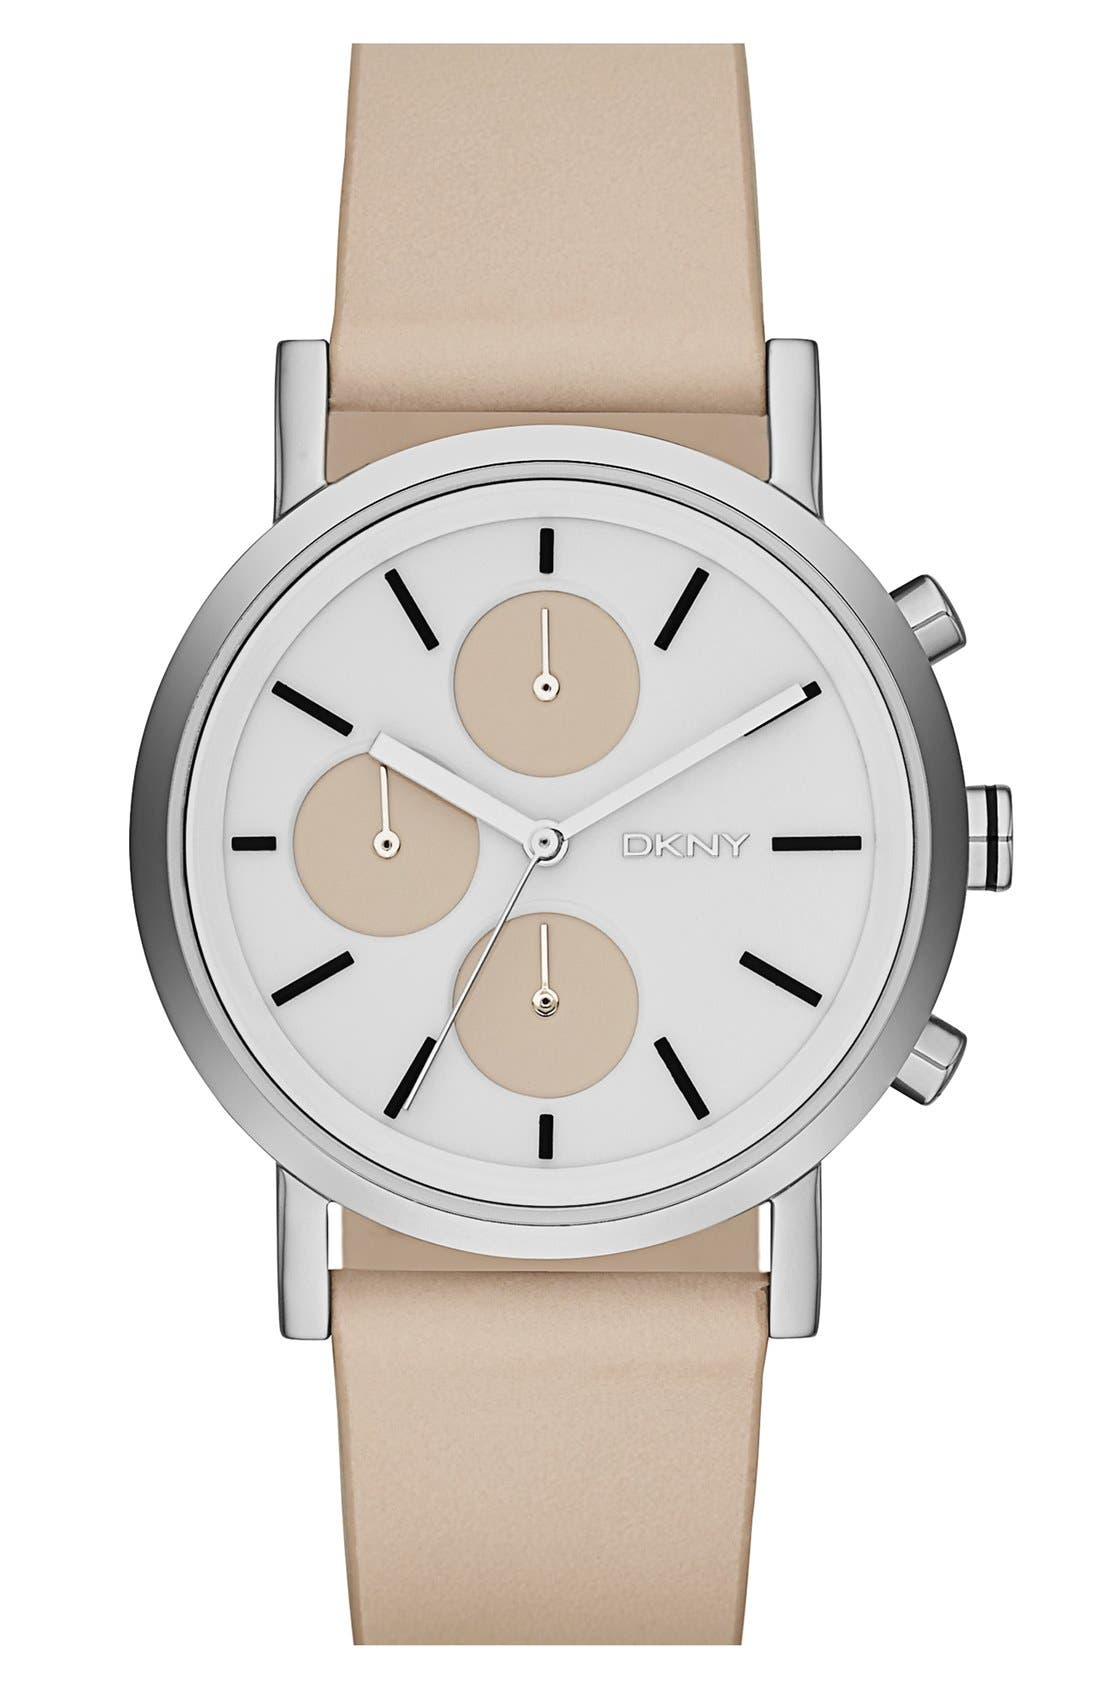 Main Image - DKNY 'Soho' Round Leather Strap Watch, 38mm